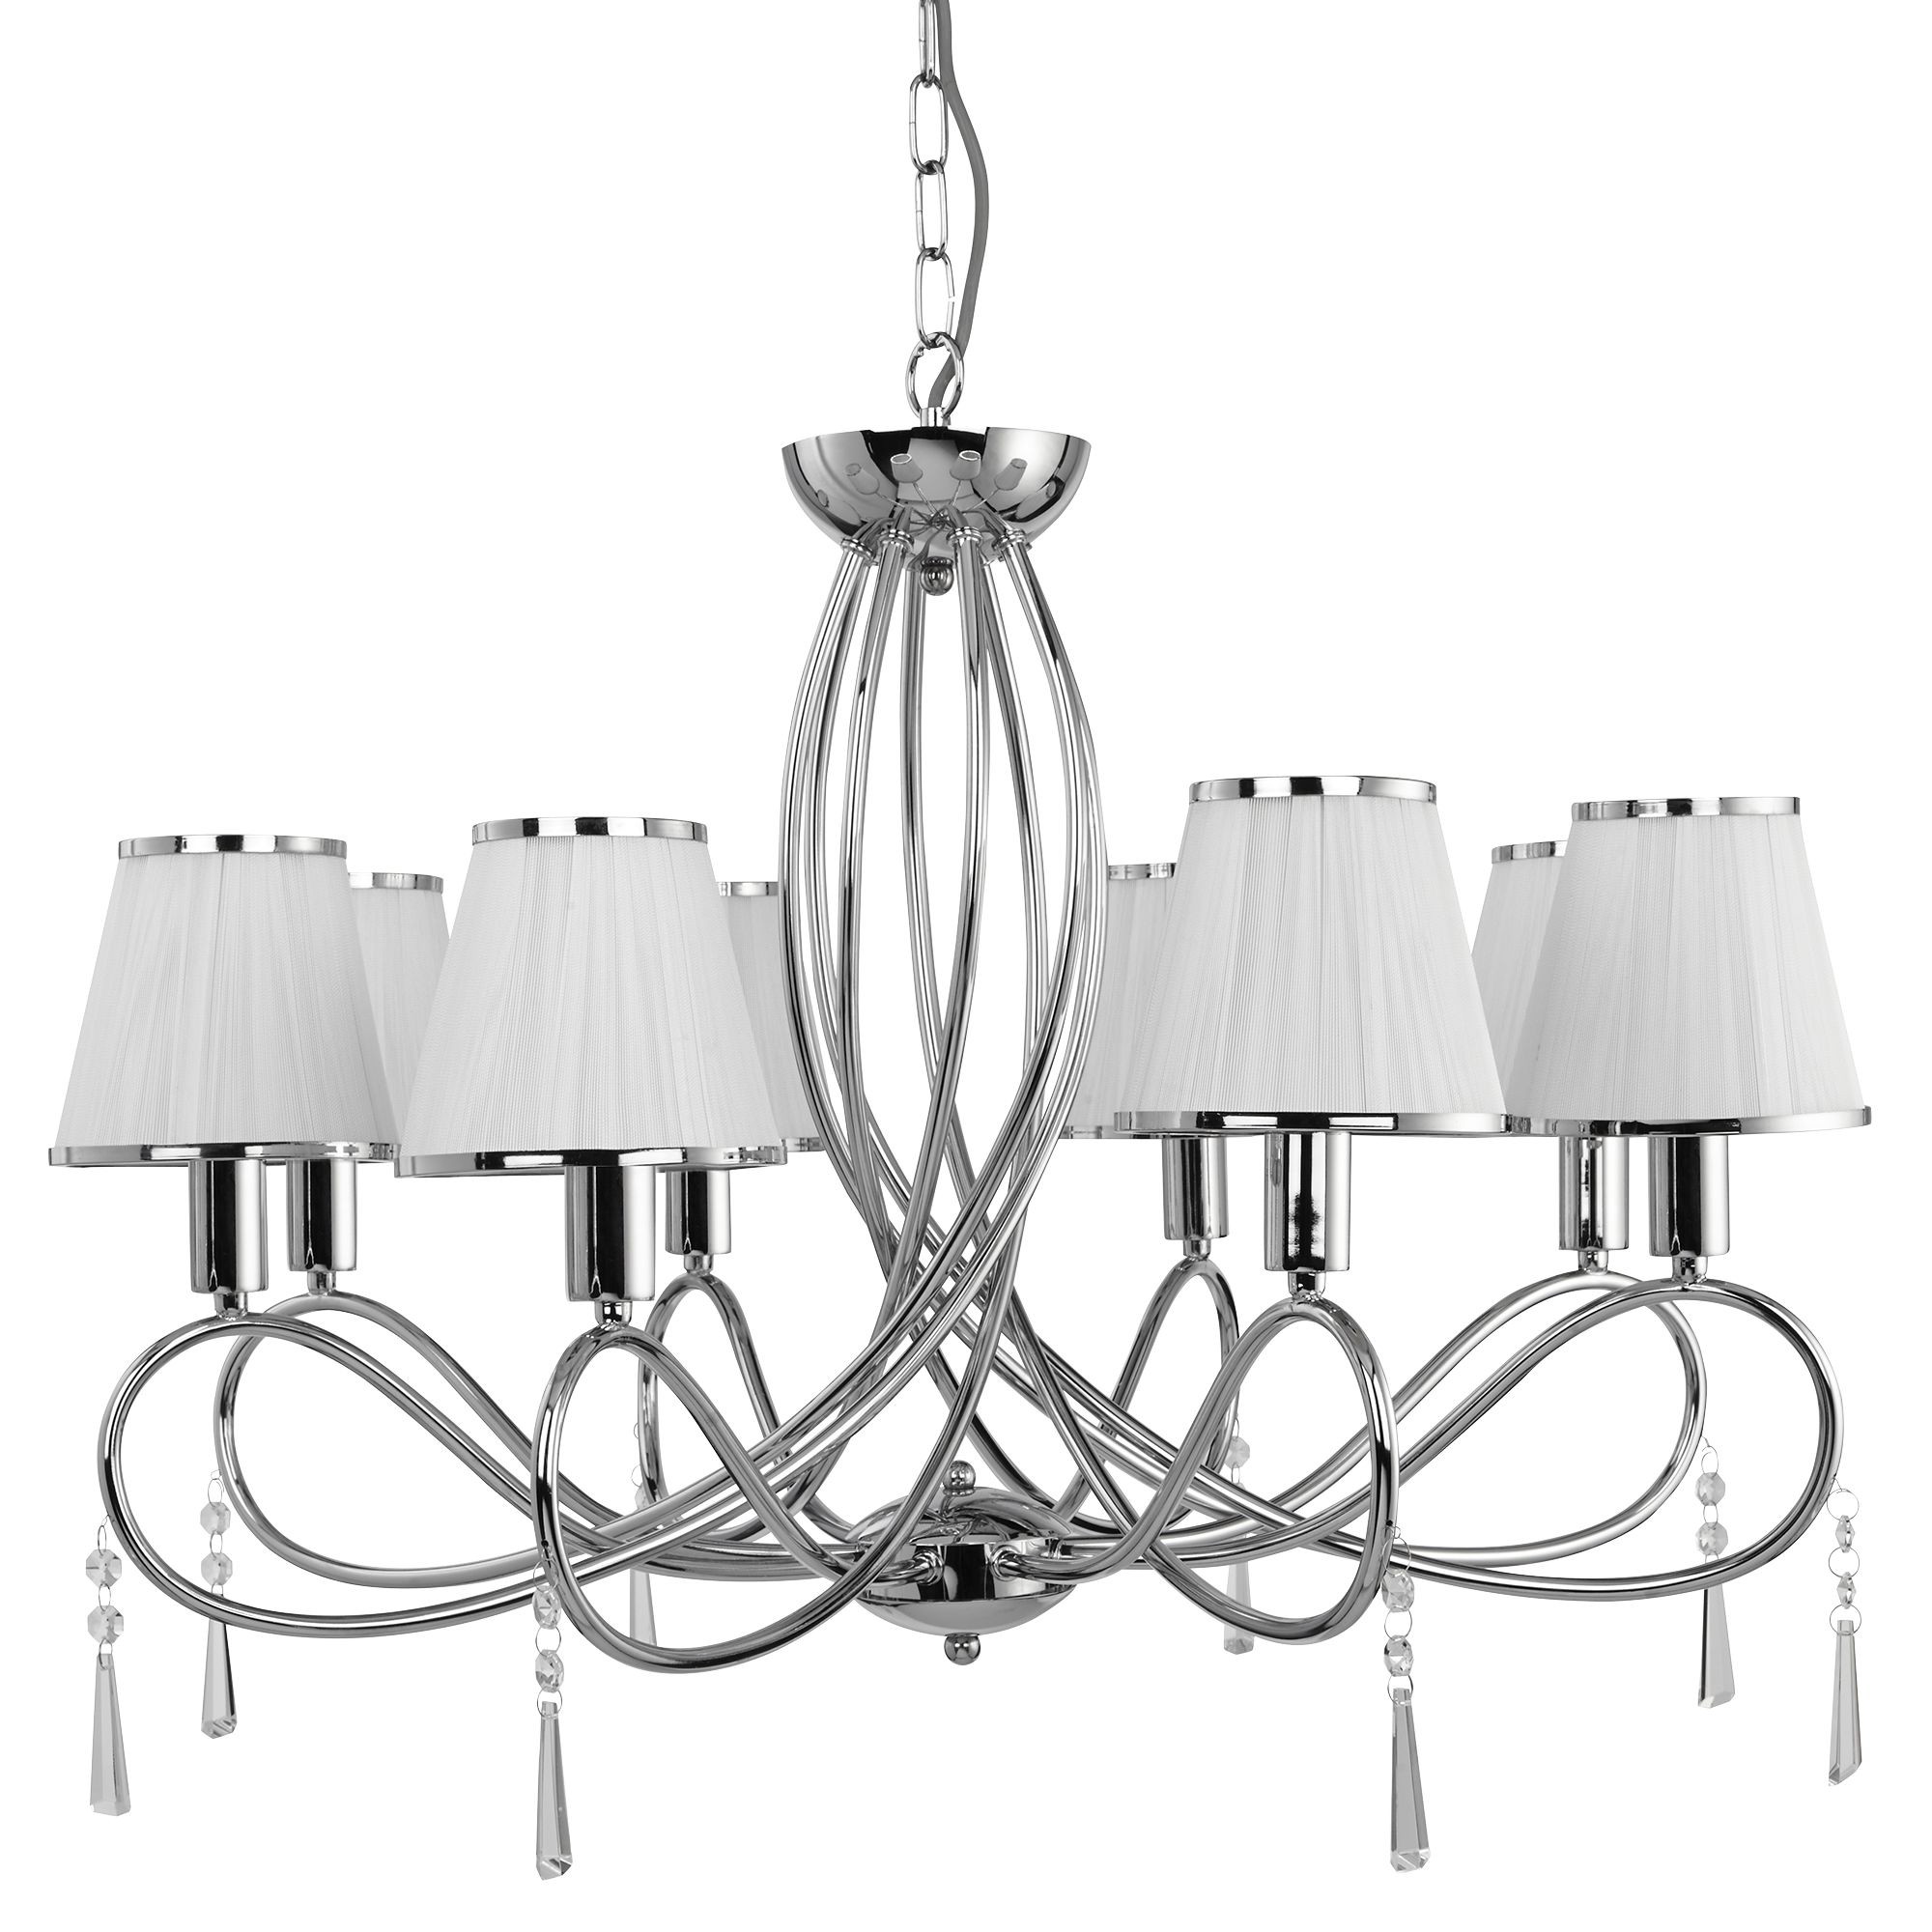 Simplicity Chrome 8 Light Fitting With Glass Drops & White String Shades